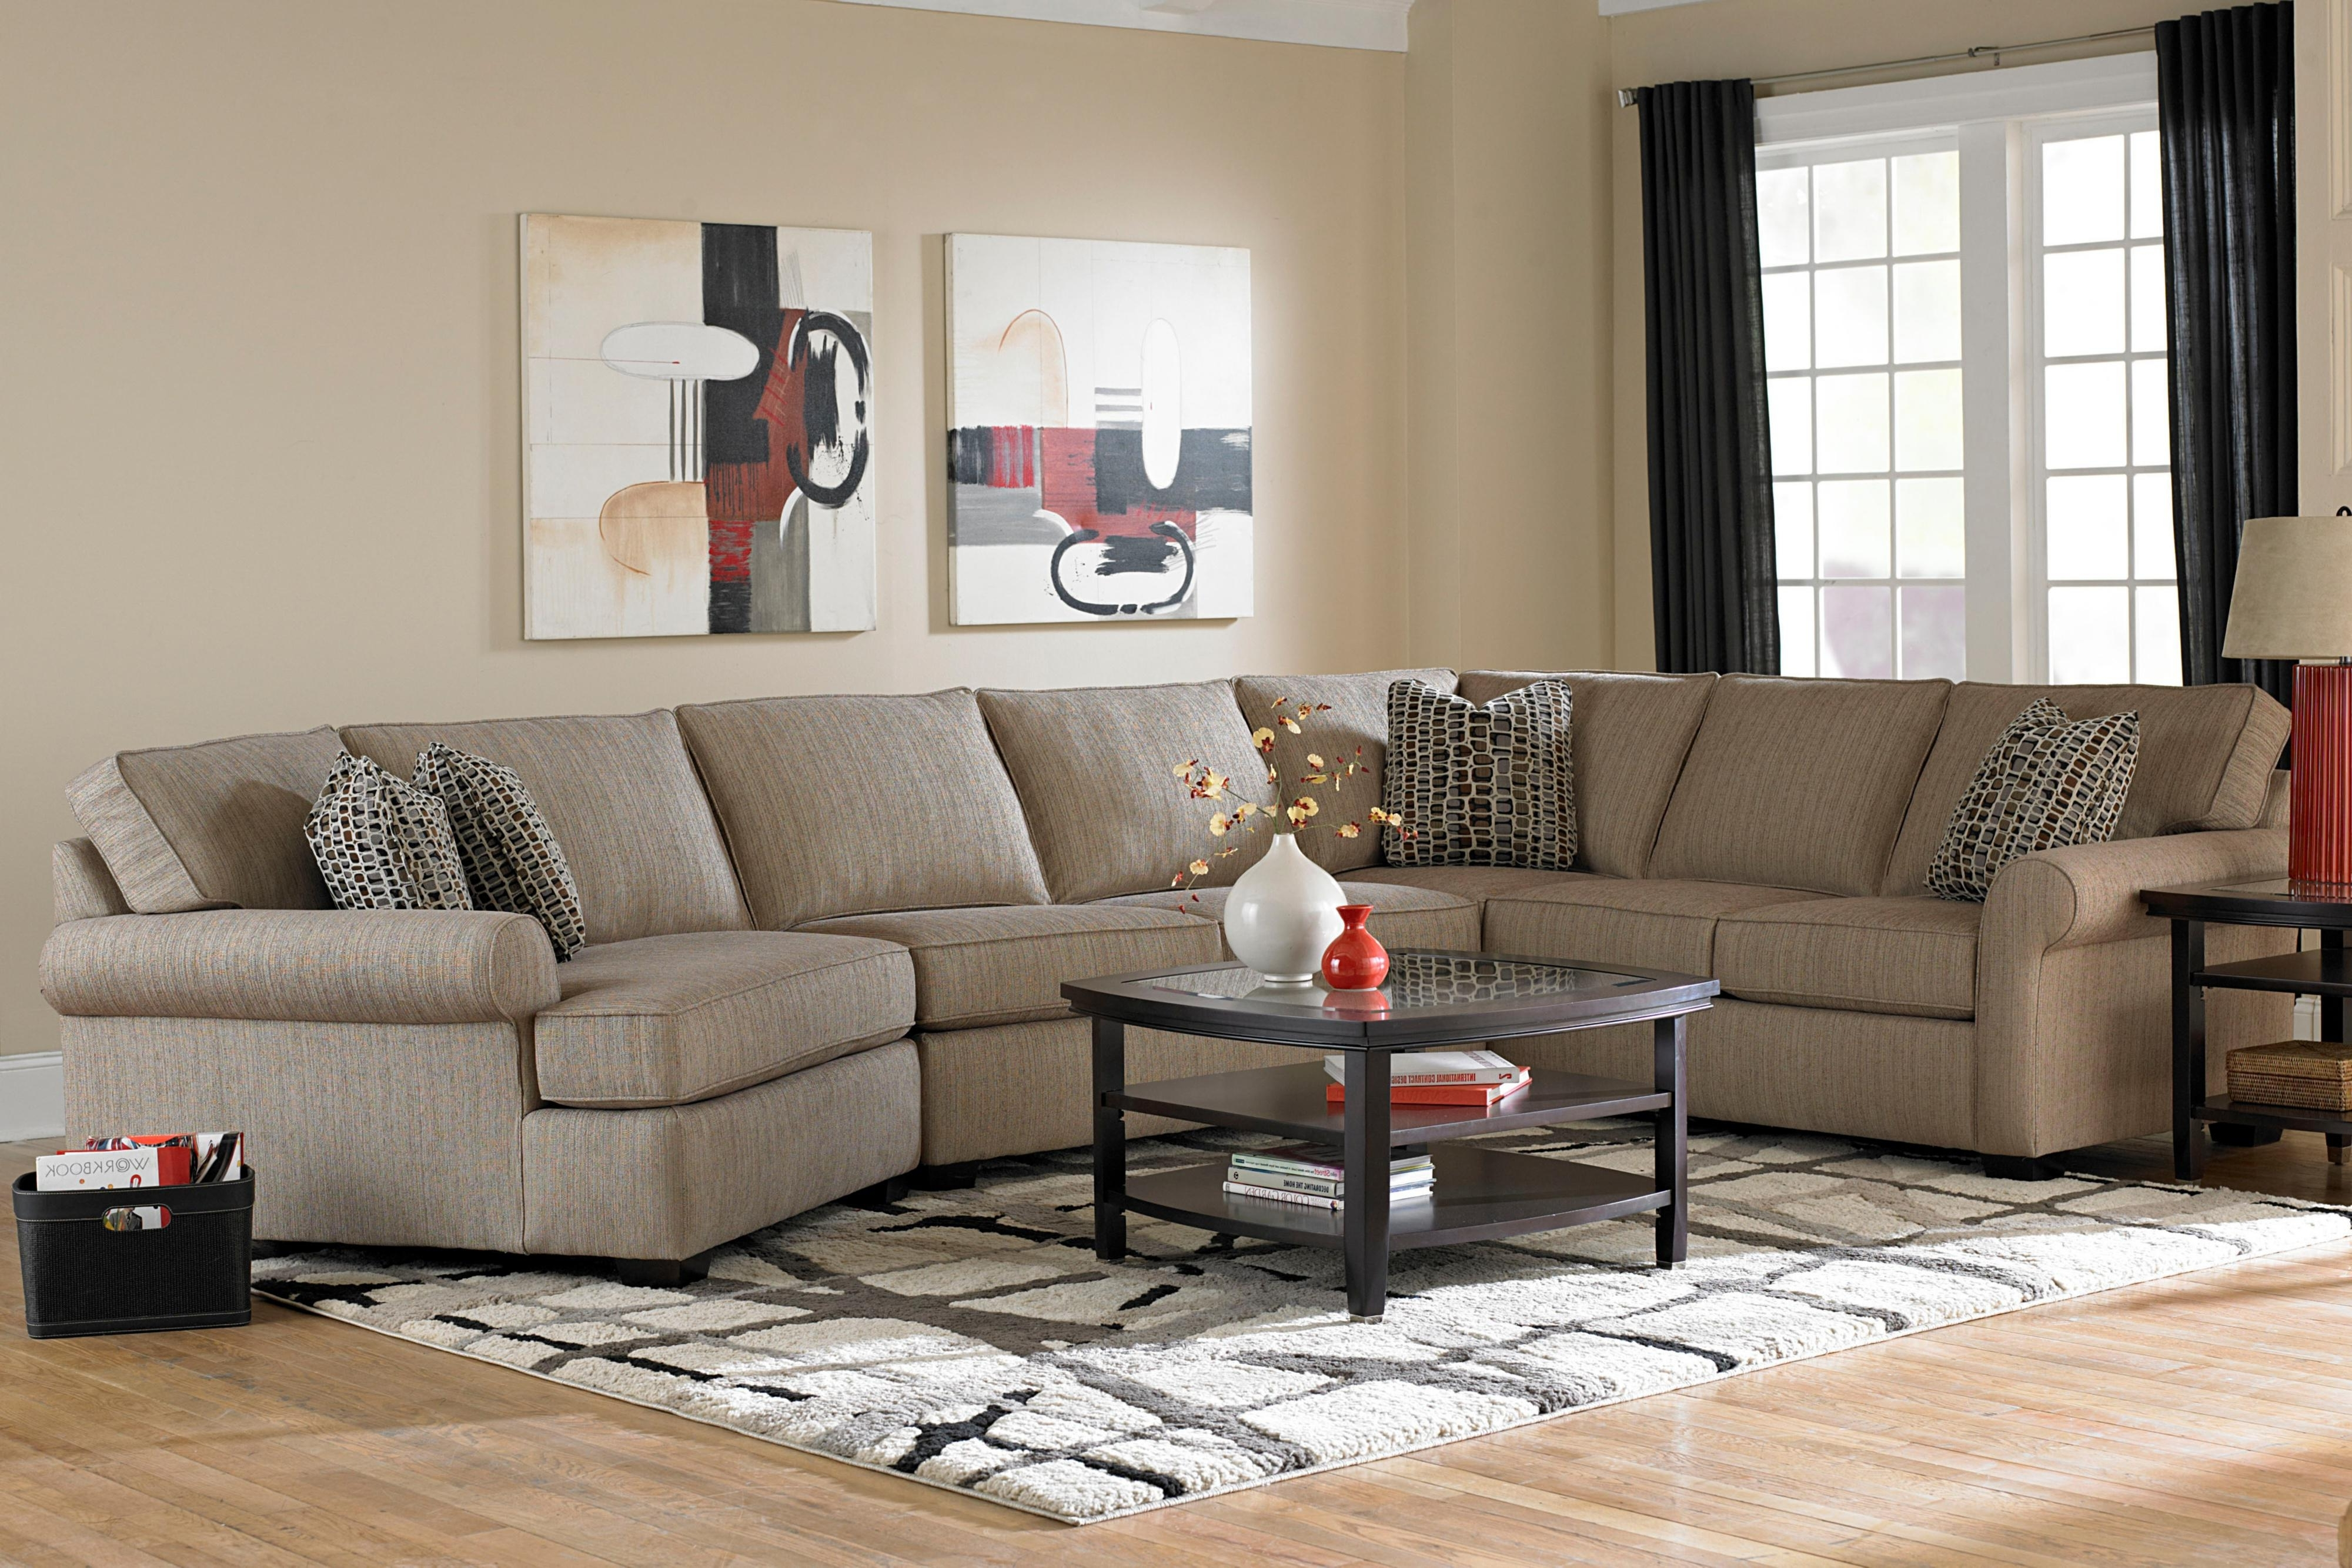 Broyhill Furniture Ethan Transitional Sectional Sofa With Right Pertaining To Latest Philadelphia Sectional Sofas (View 1 of 15)